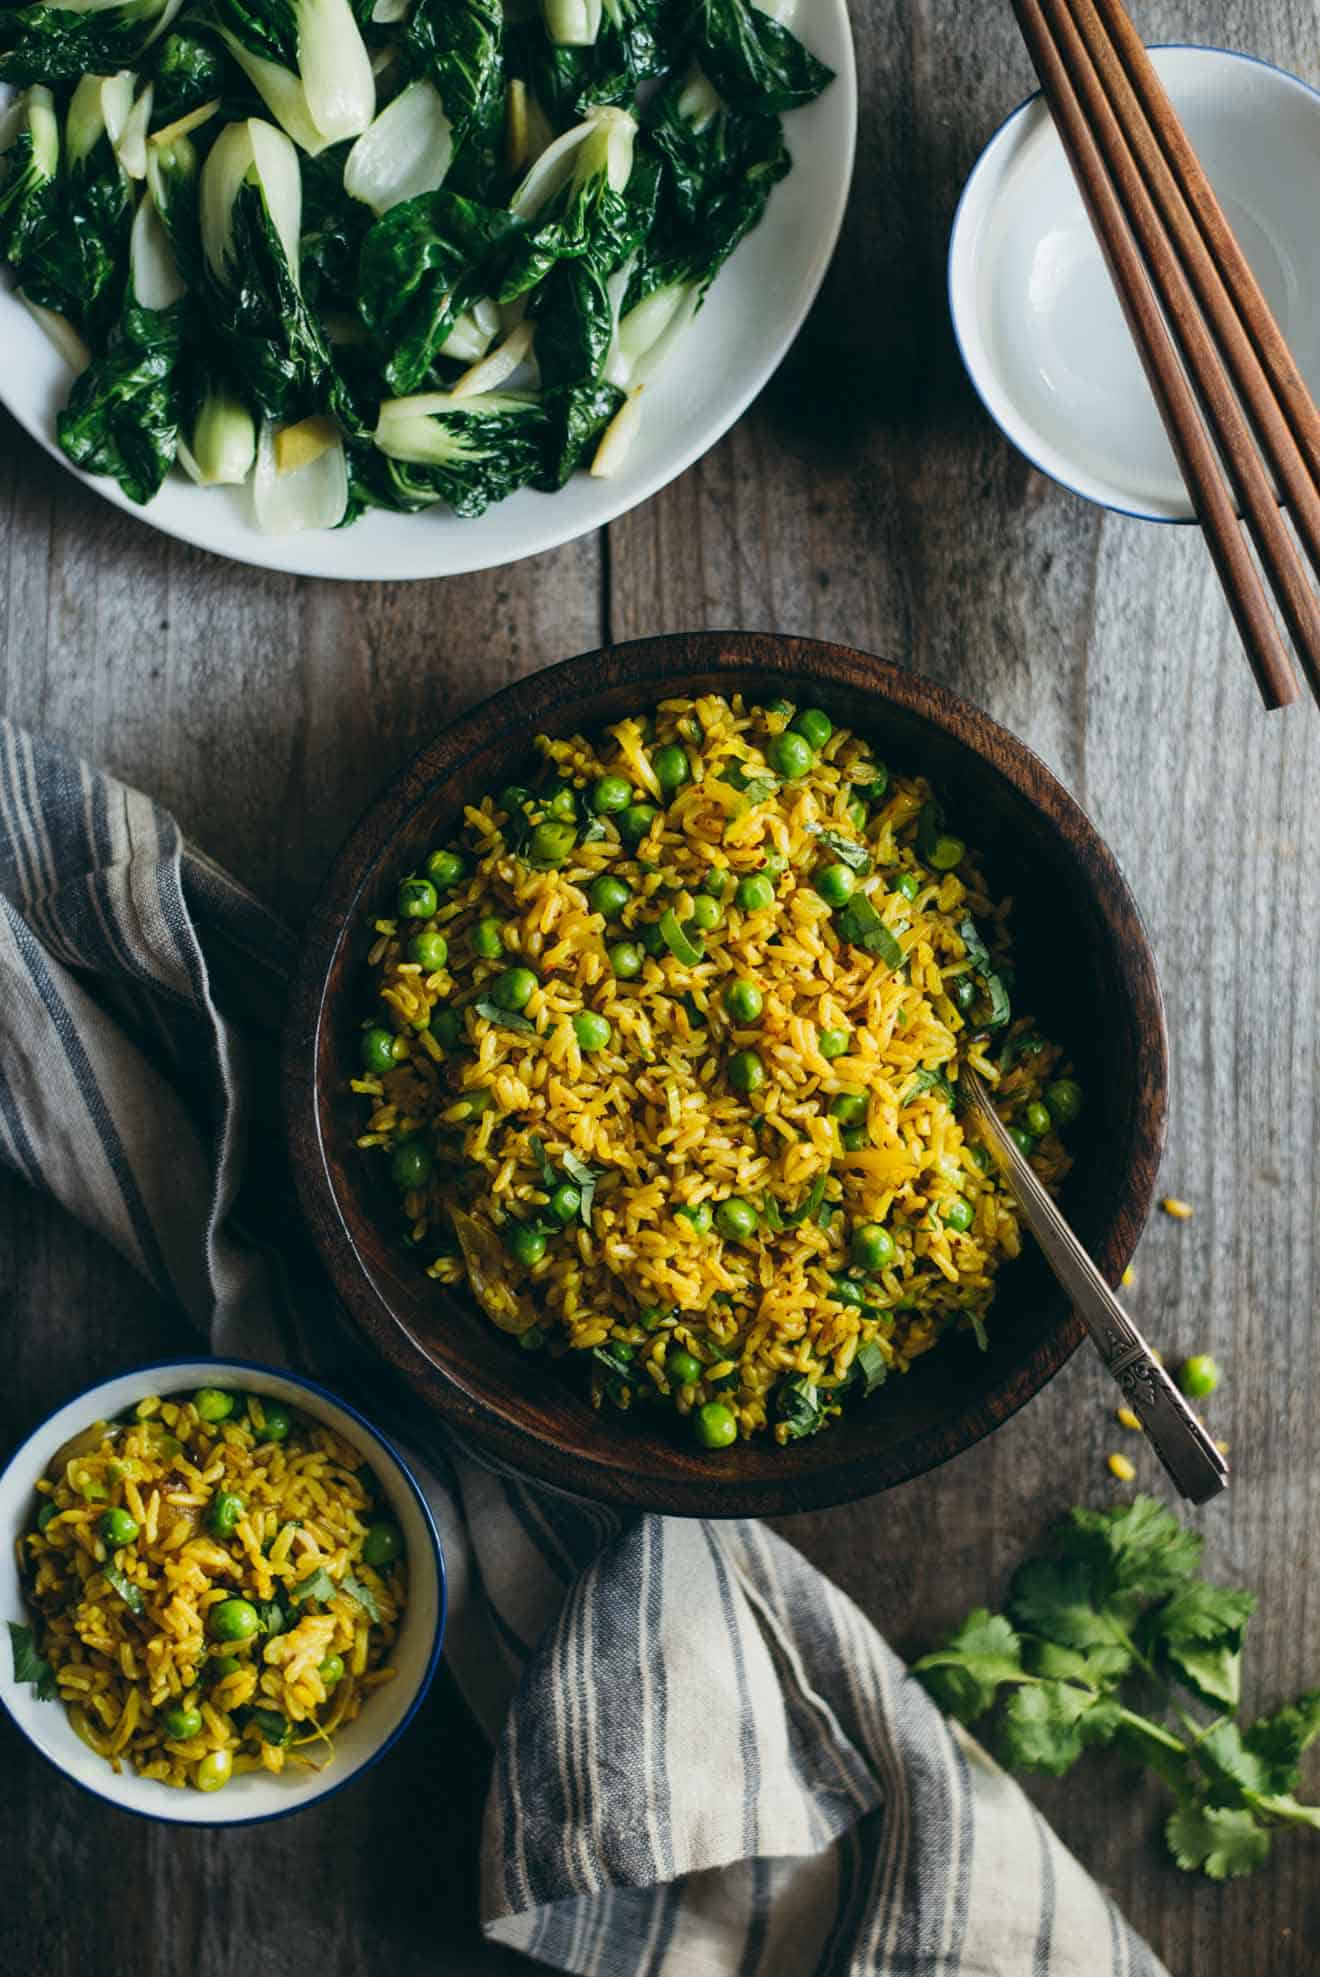 Burmese Fried Rice - a quick and healthy vegan fried rice with shallots, peas, and turmeric! by @healthynibs